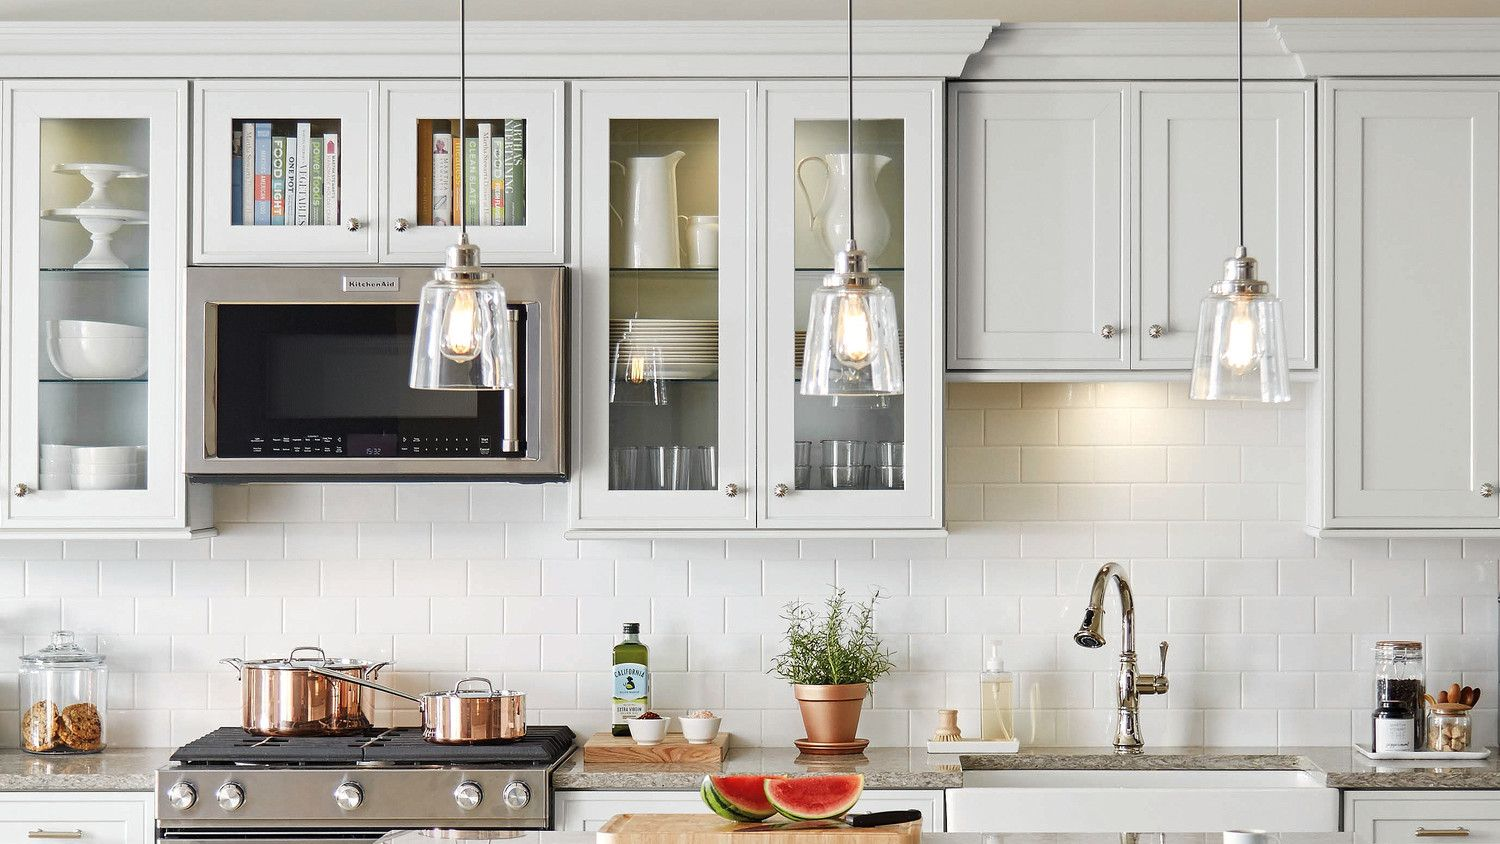 How To Paint Kitchen Cabinets Kitchen Remodel Home Improvement